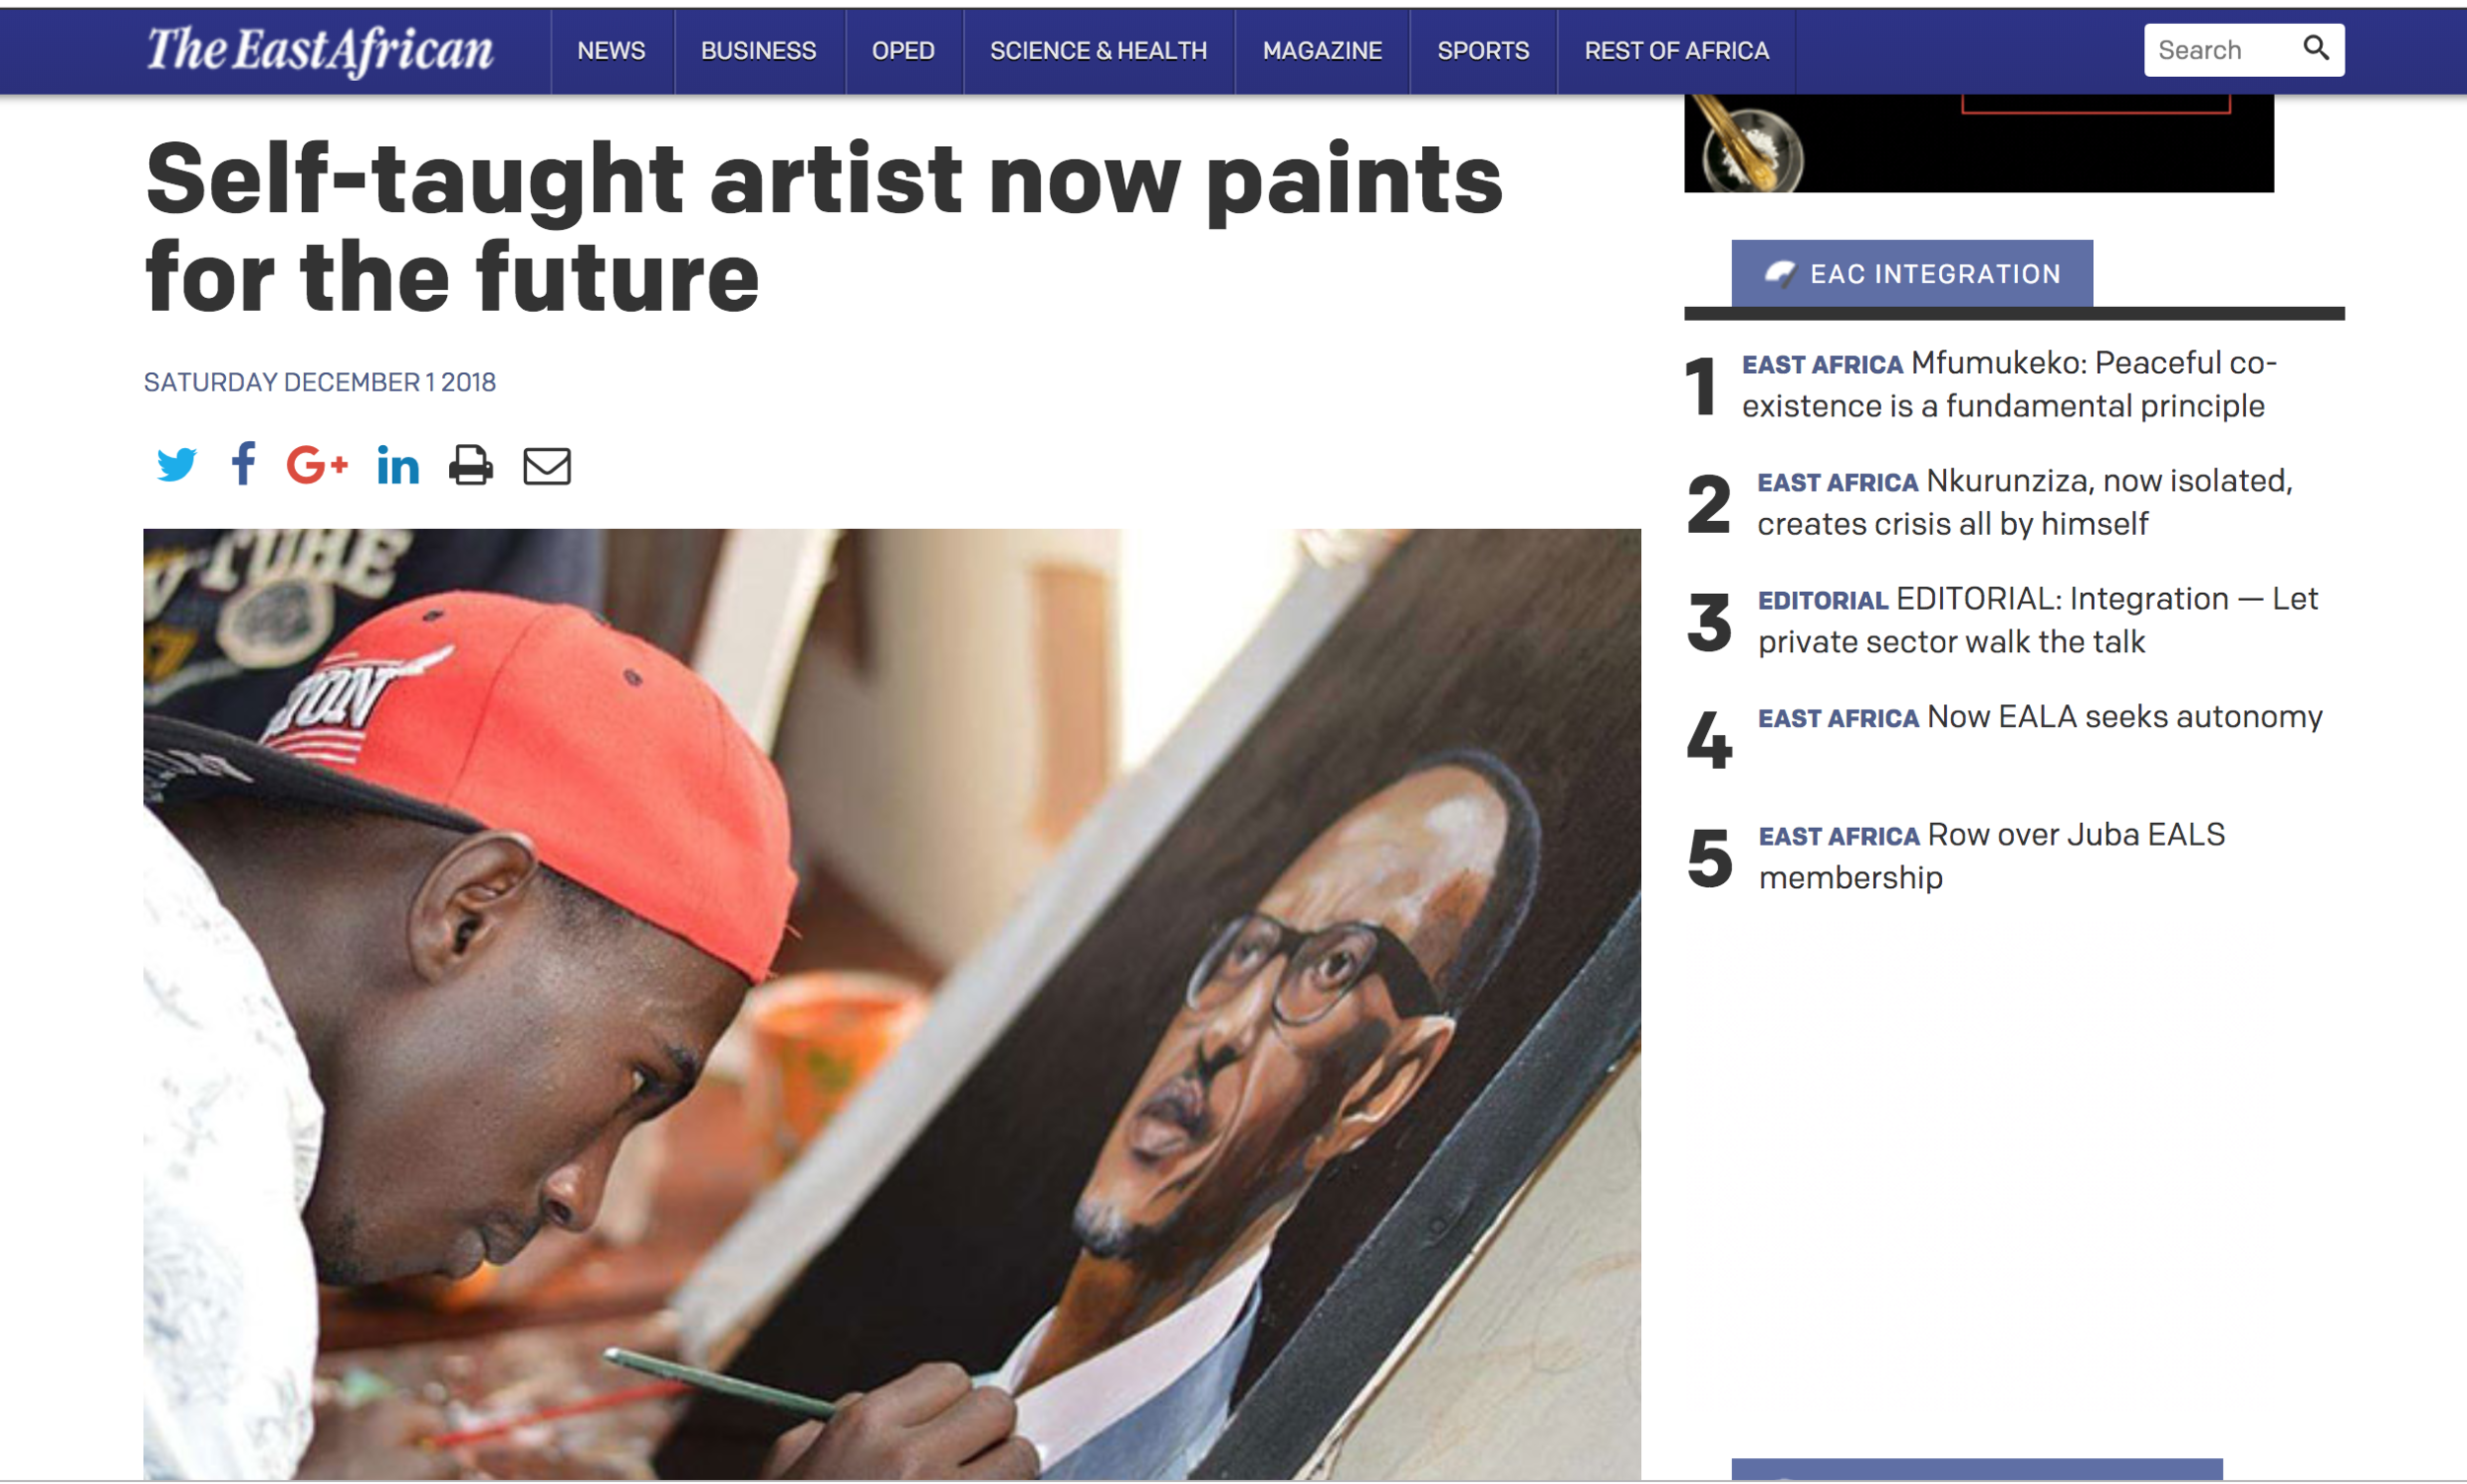 The East African featuring our resident artist Basengo Idi